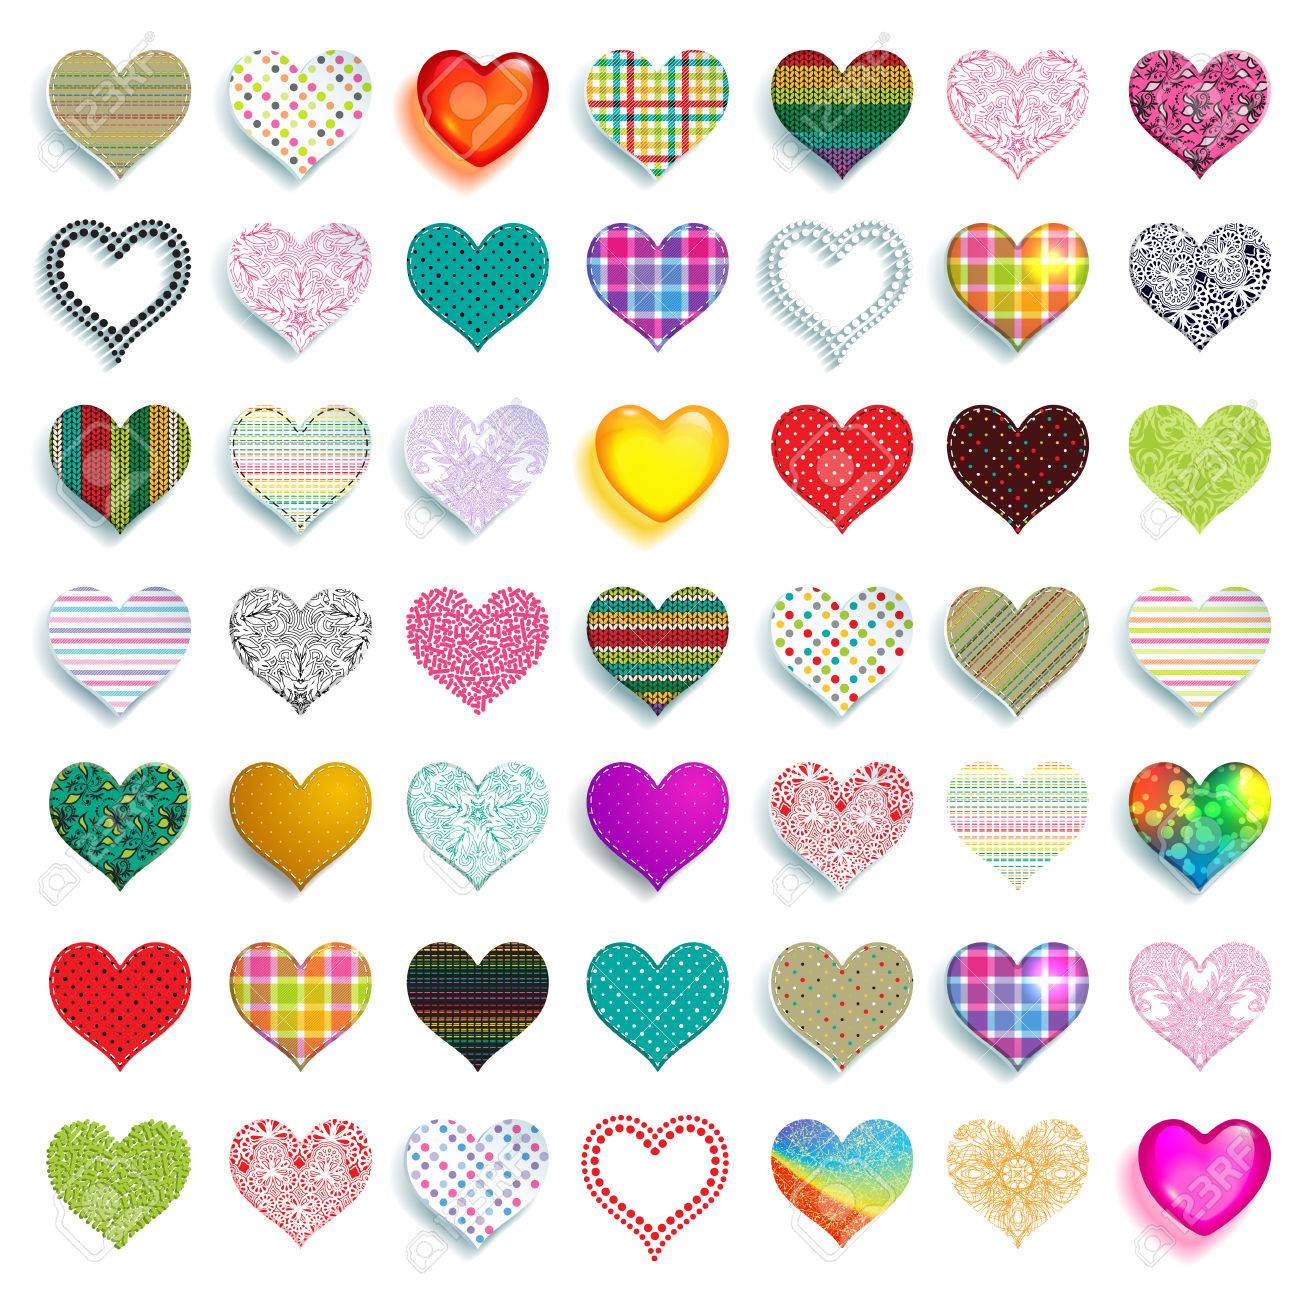 How to scrapbook materials - Mega Set Of 49 Colorful Scrapbook Hearts Of Different Colors Graphics And Materials Such